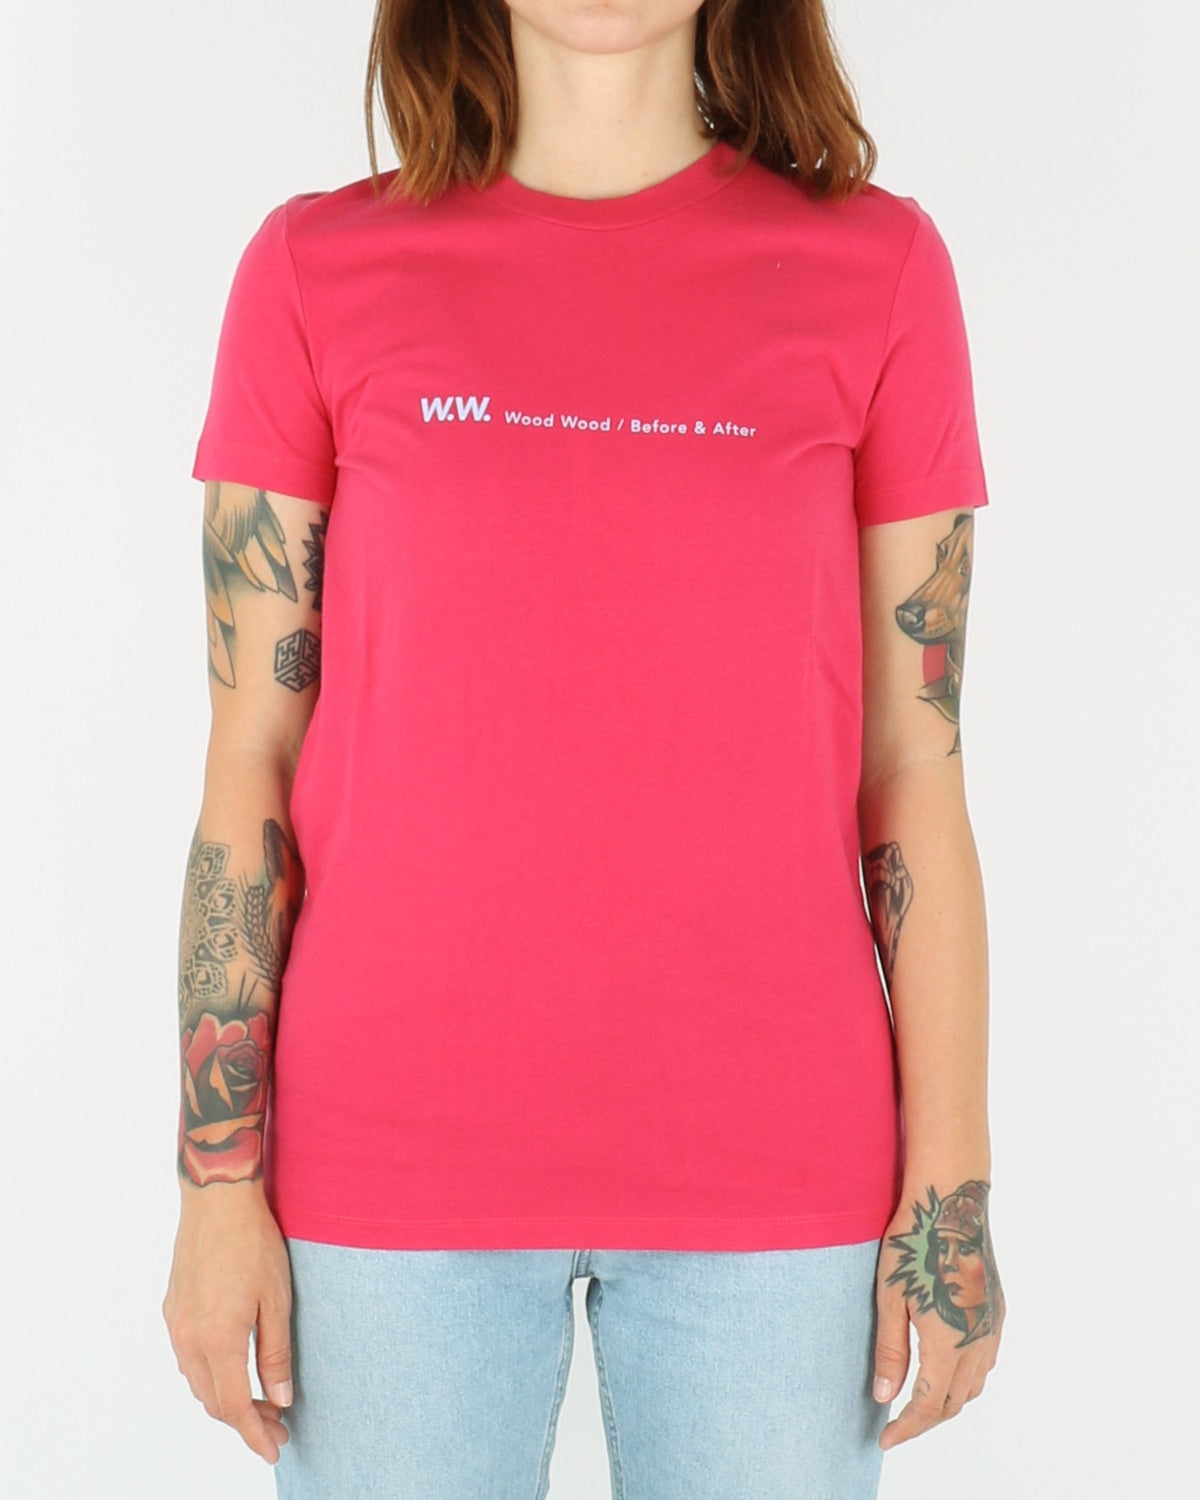 wood wood_eden t-shirt_pink_view_2_3